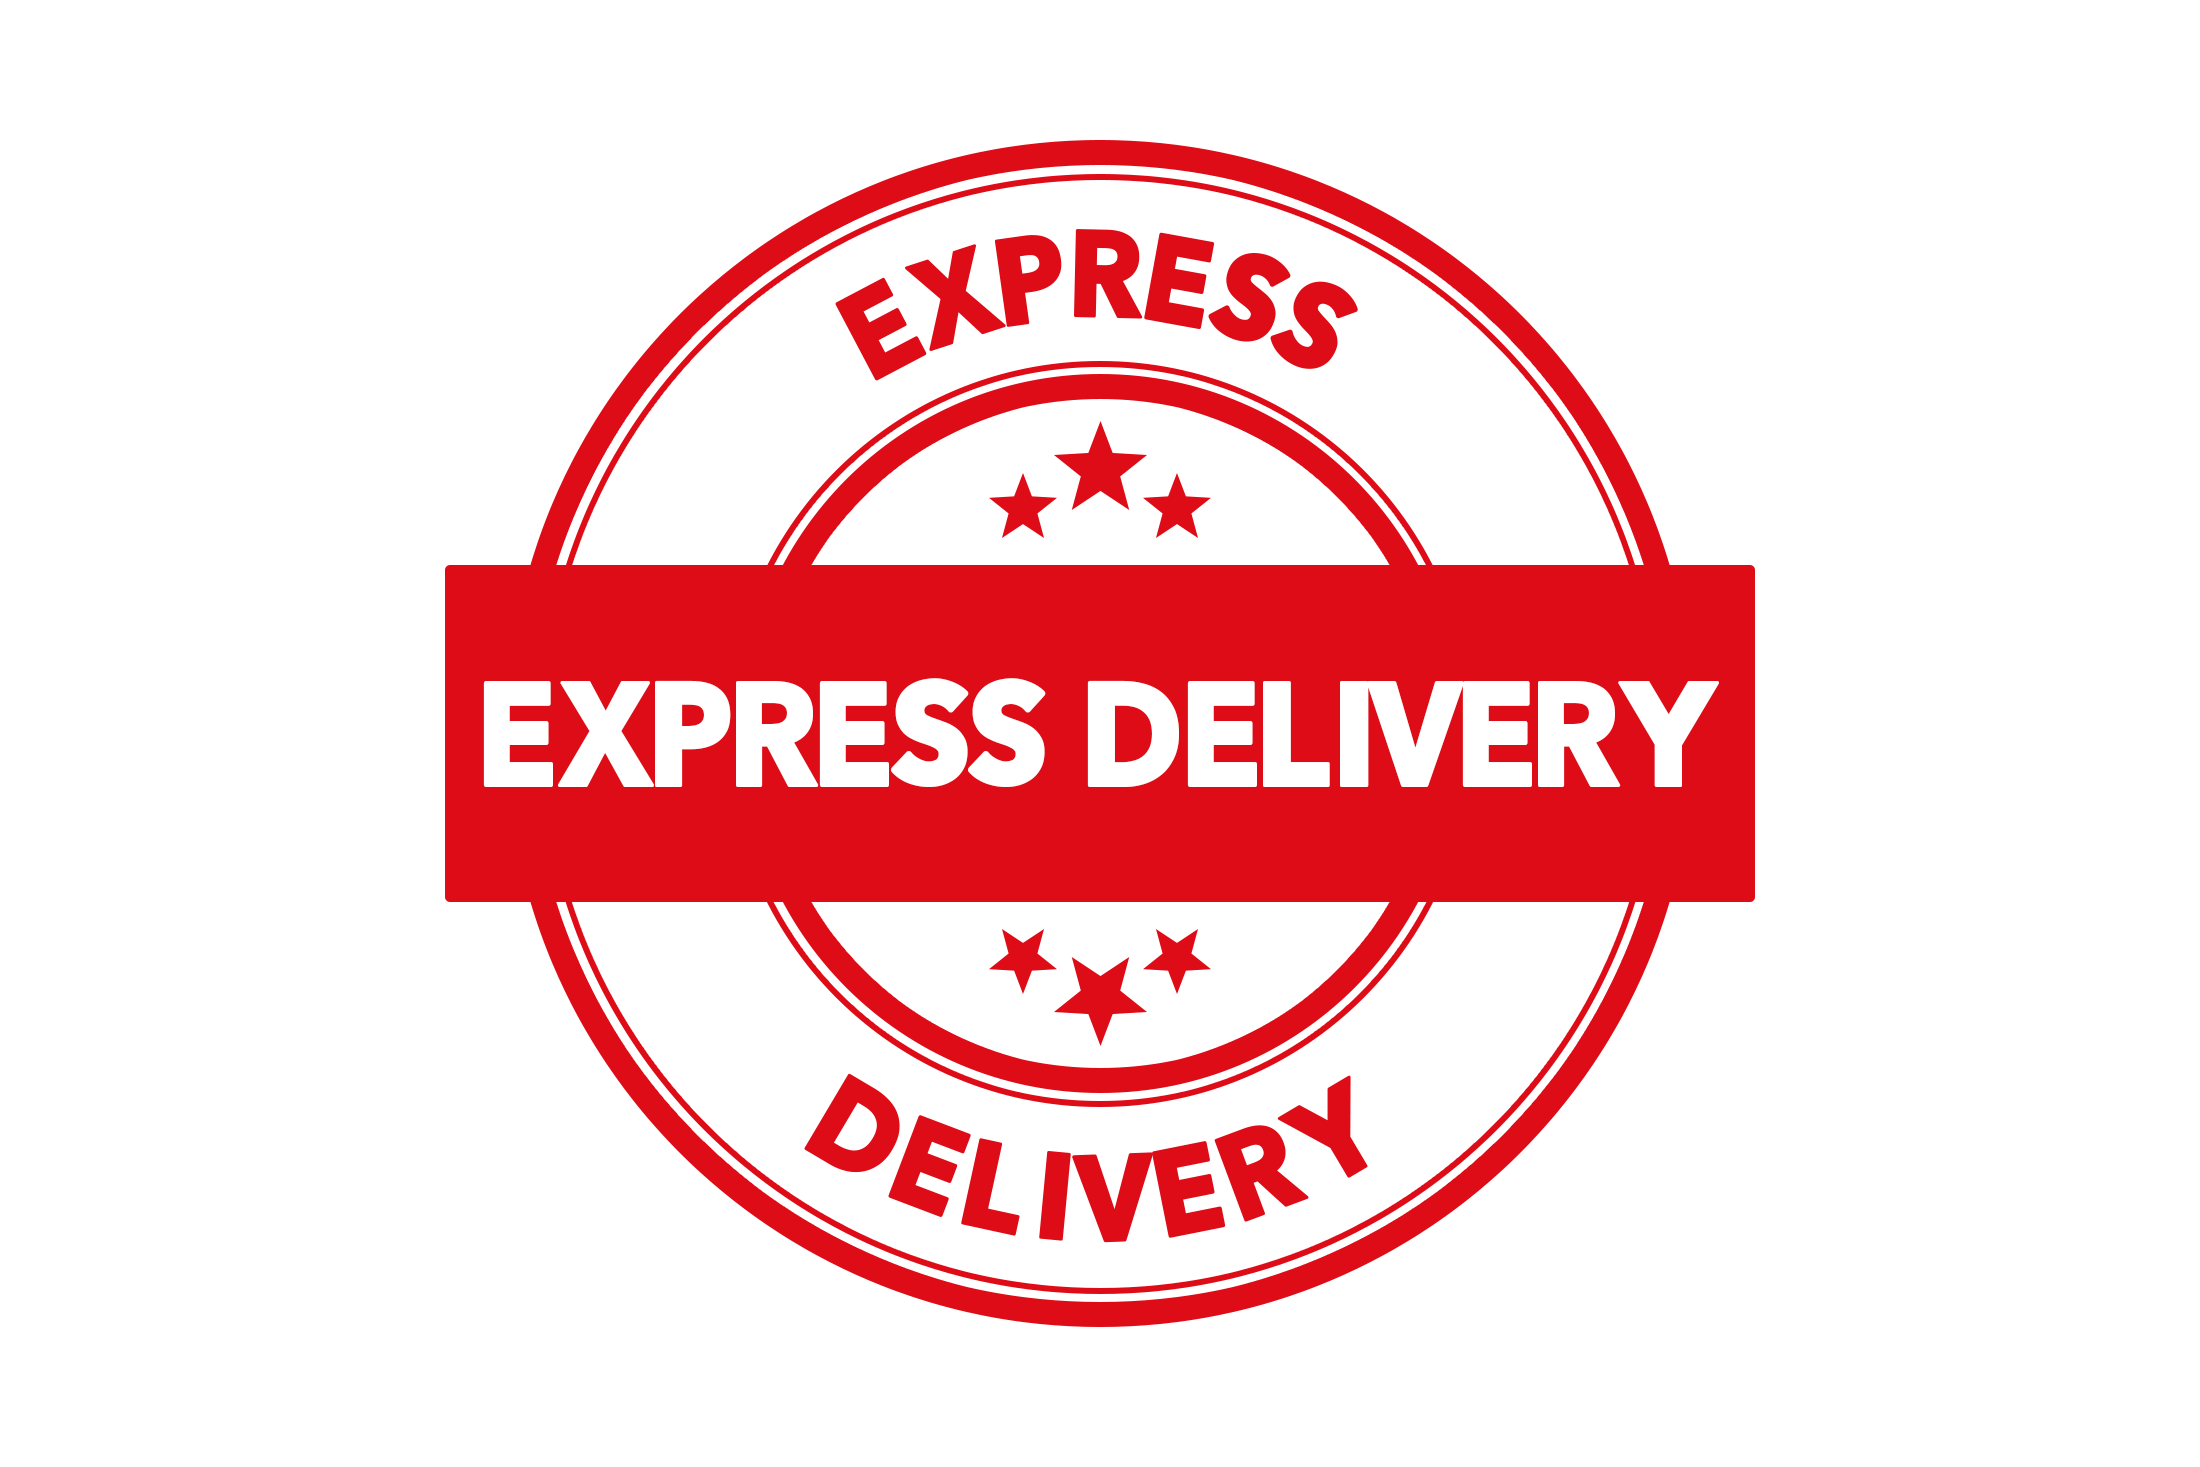 Round express delivery stamp PSD